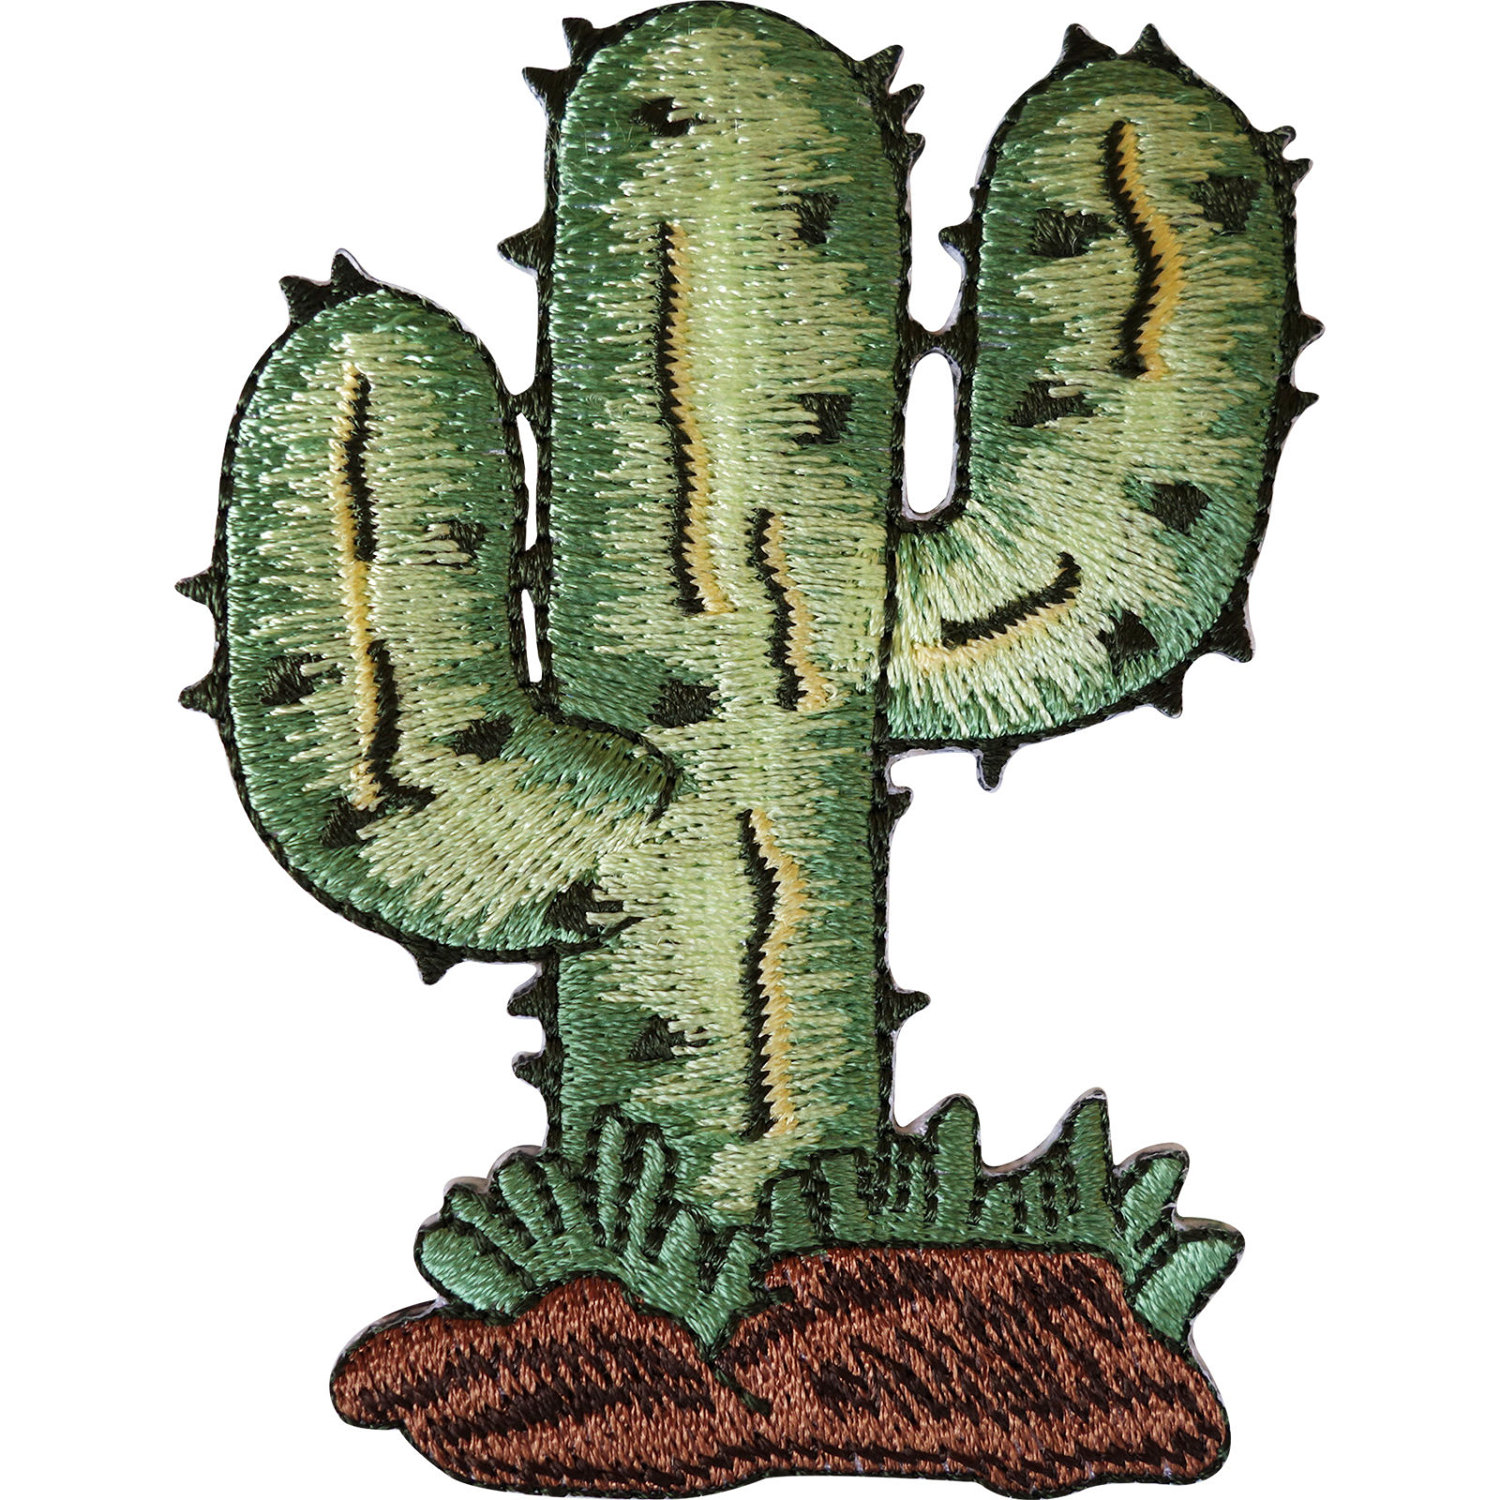 1500x1500 Cactus Clipart, Suggestions For Cactus Clipart, Download Cactus